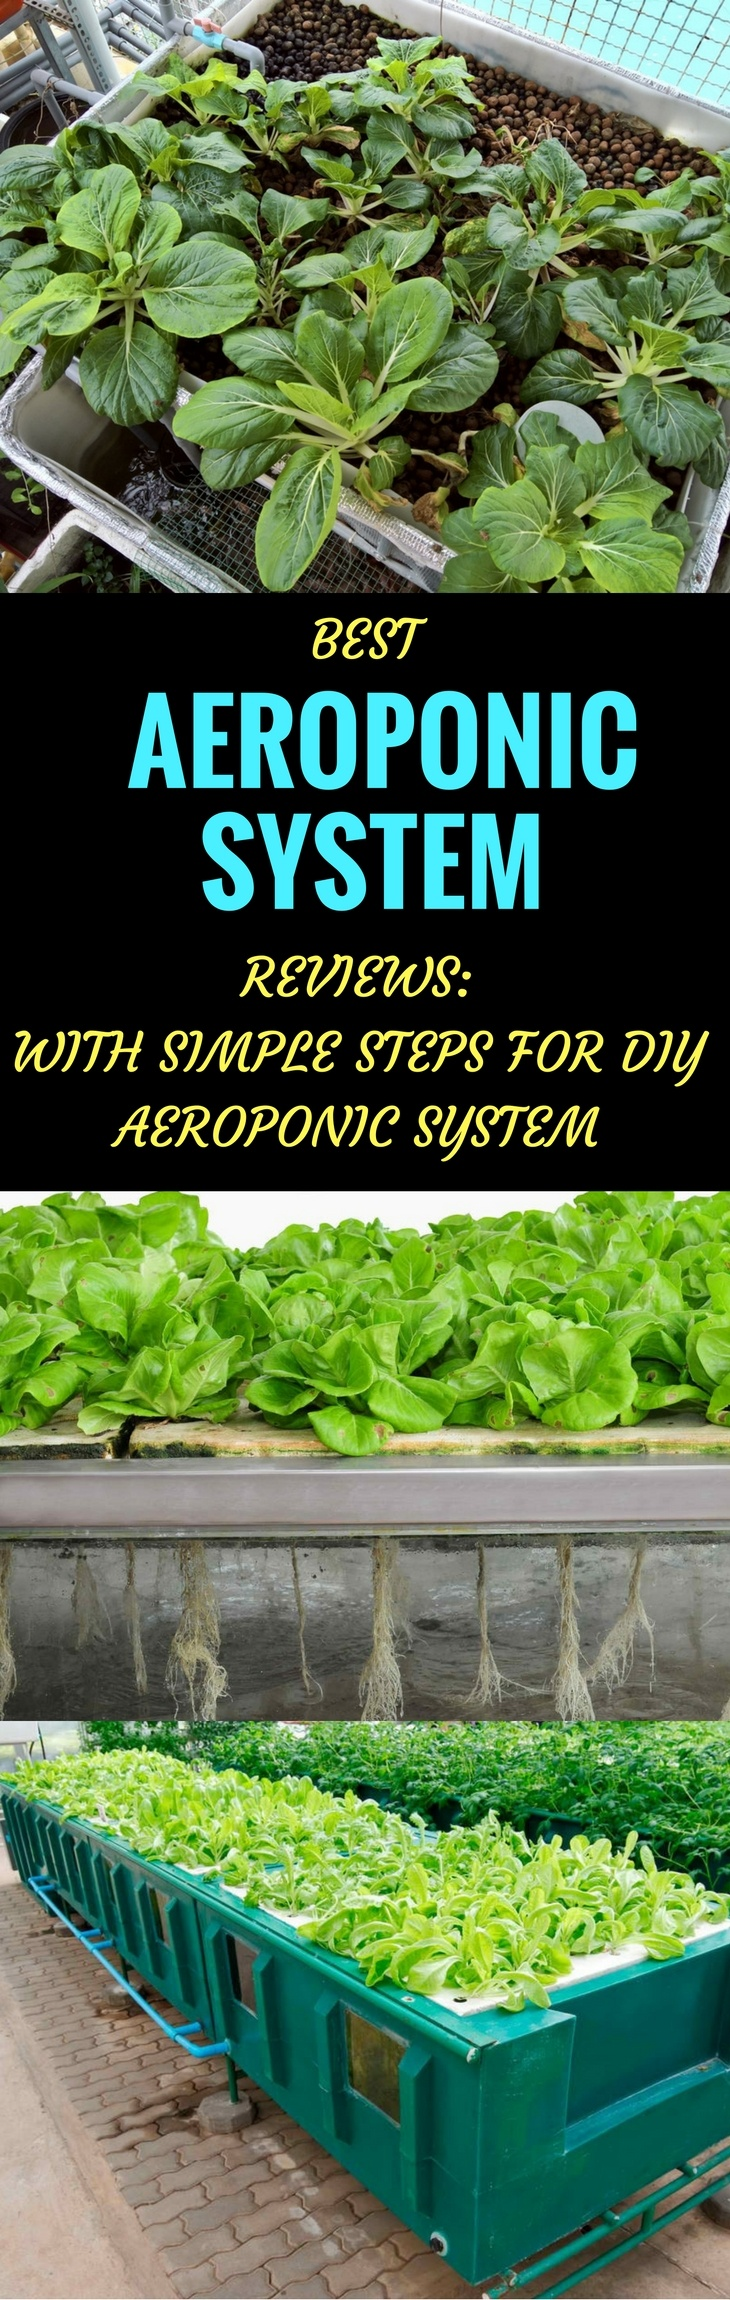 best aeroponic system pin it